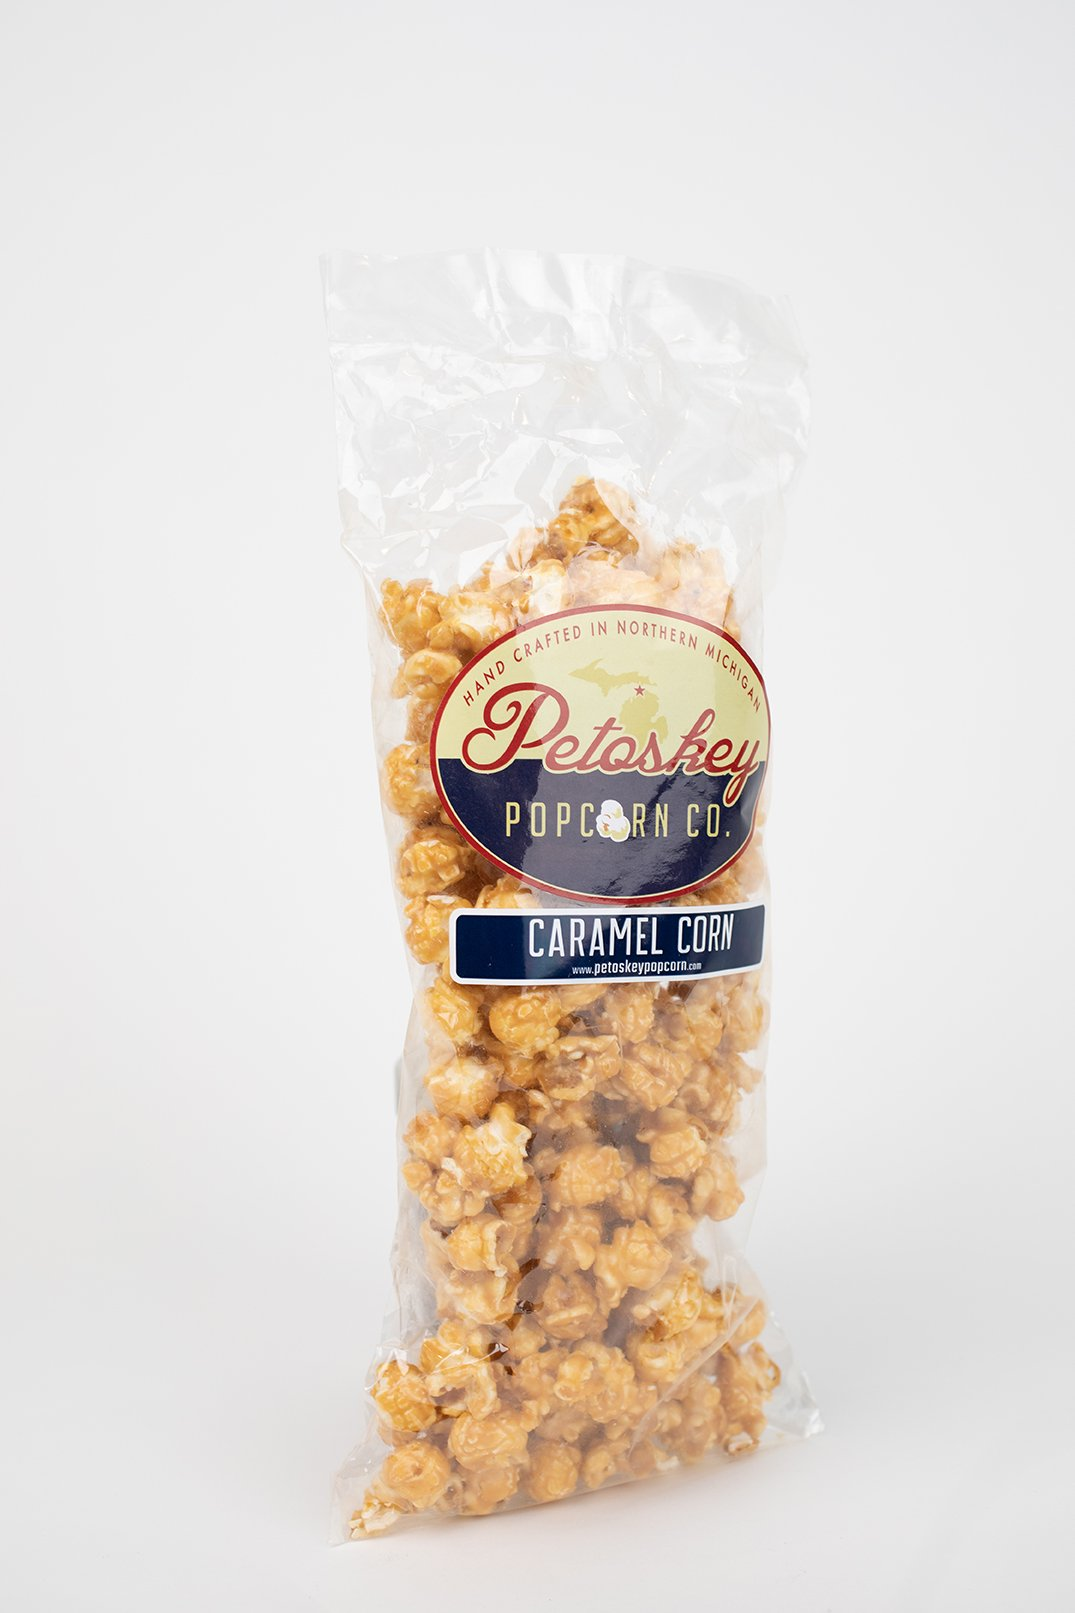 Petoskey Popcorn Co. caramel corn from Murdick's